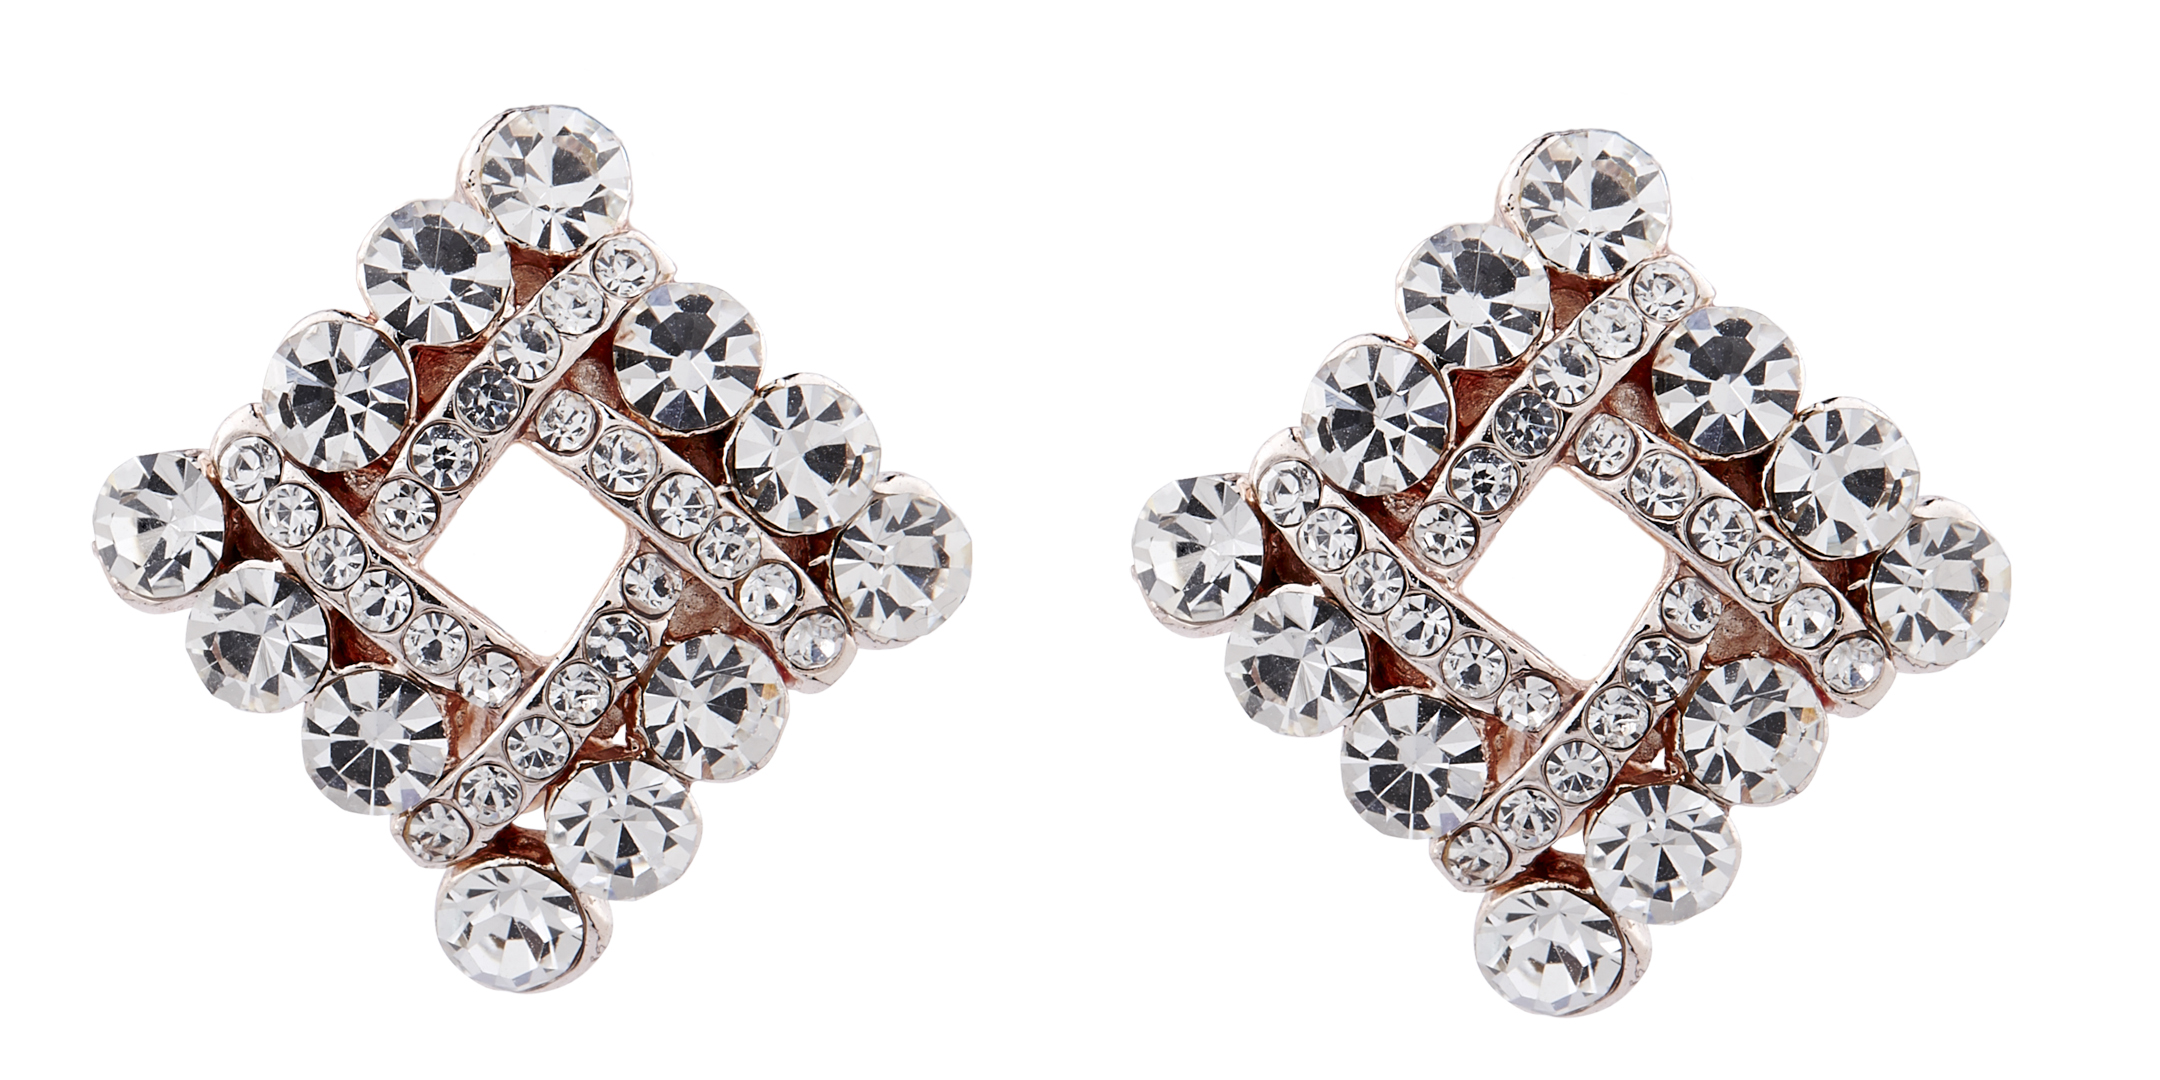 Clip On Earrings - Eva C - gold stud earring with clear cubic zirconia crystals